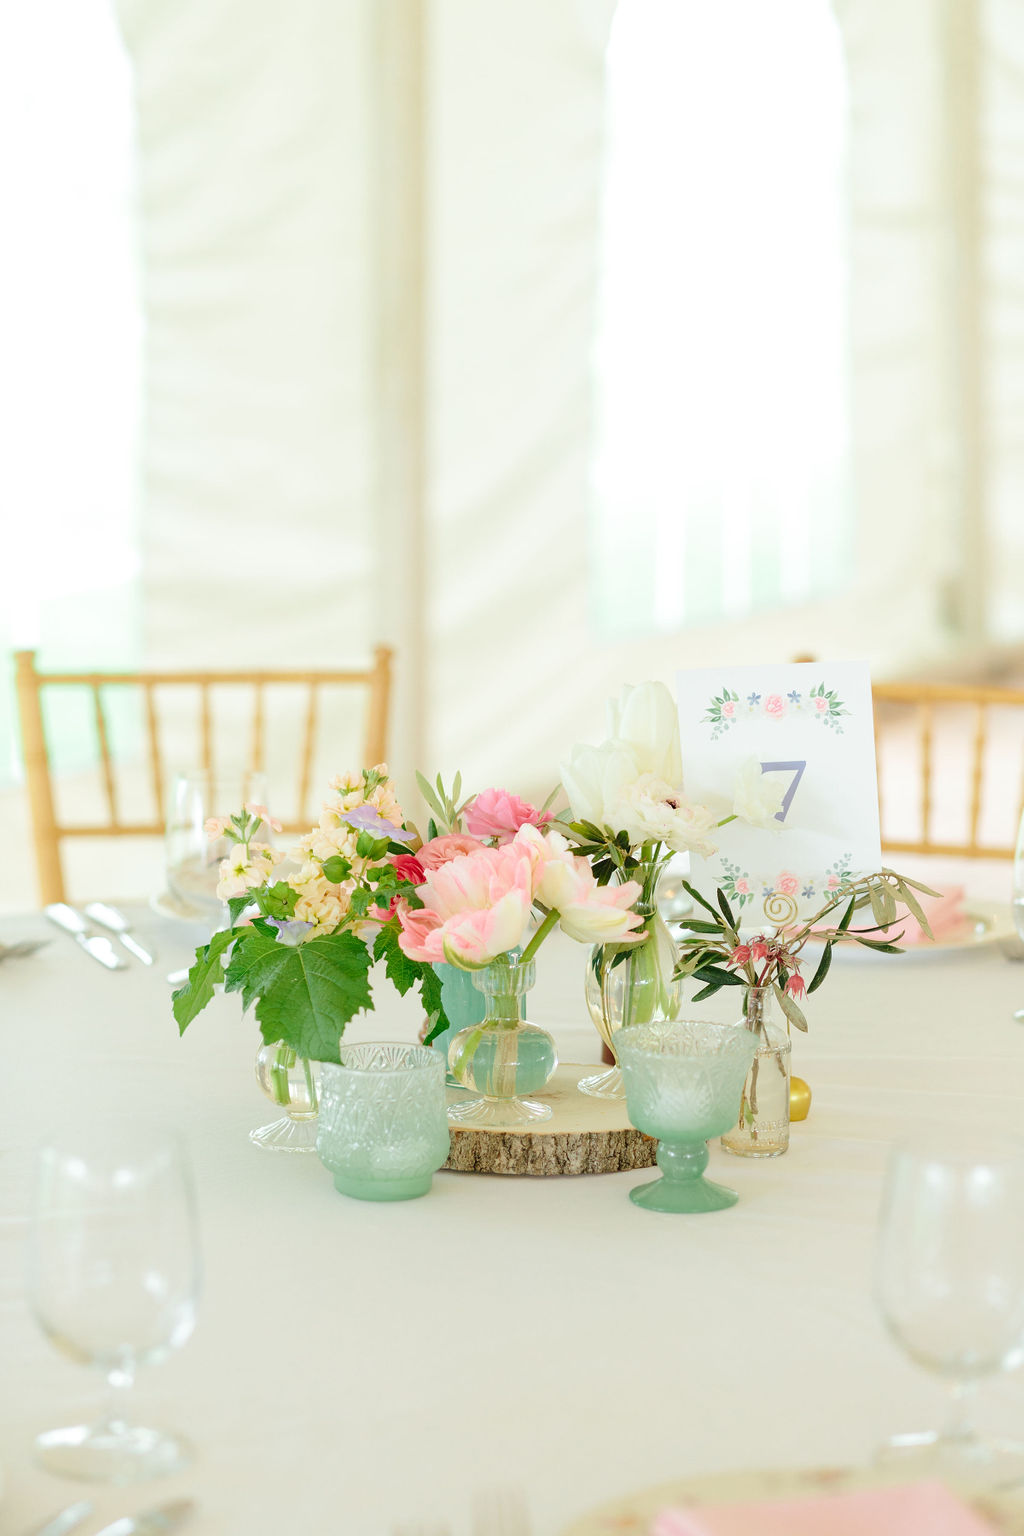 Natural floral arrangement with table number, designed to feature watercolor crest - Preppy spring wedding at Zingerman's Cornman Farms - Leah E. Moss Designs - photo by Katie Grace Photography